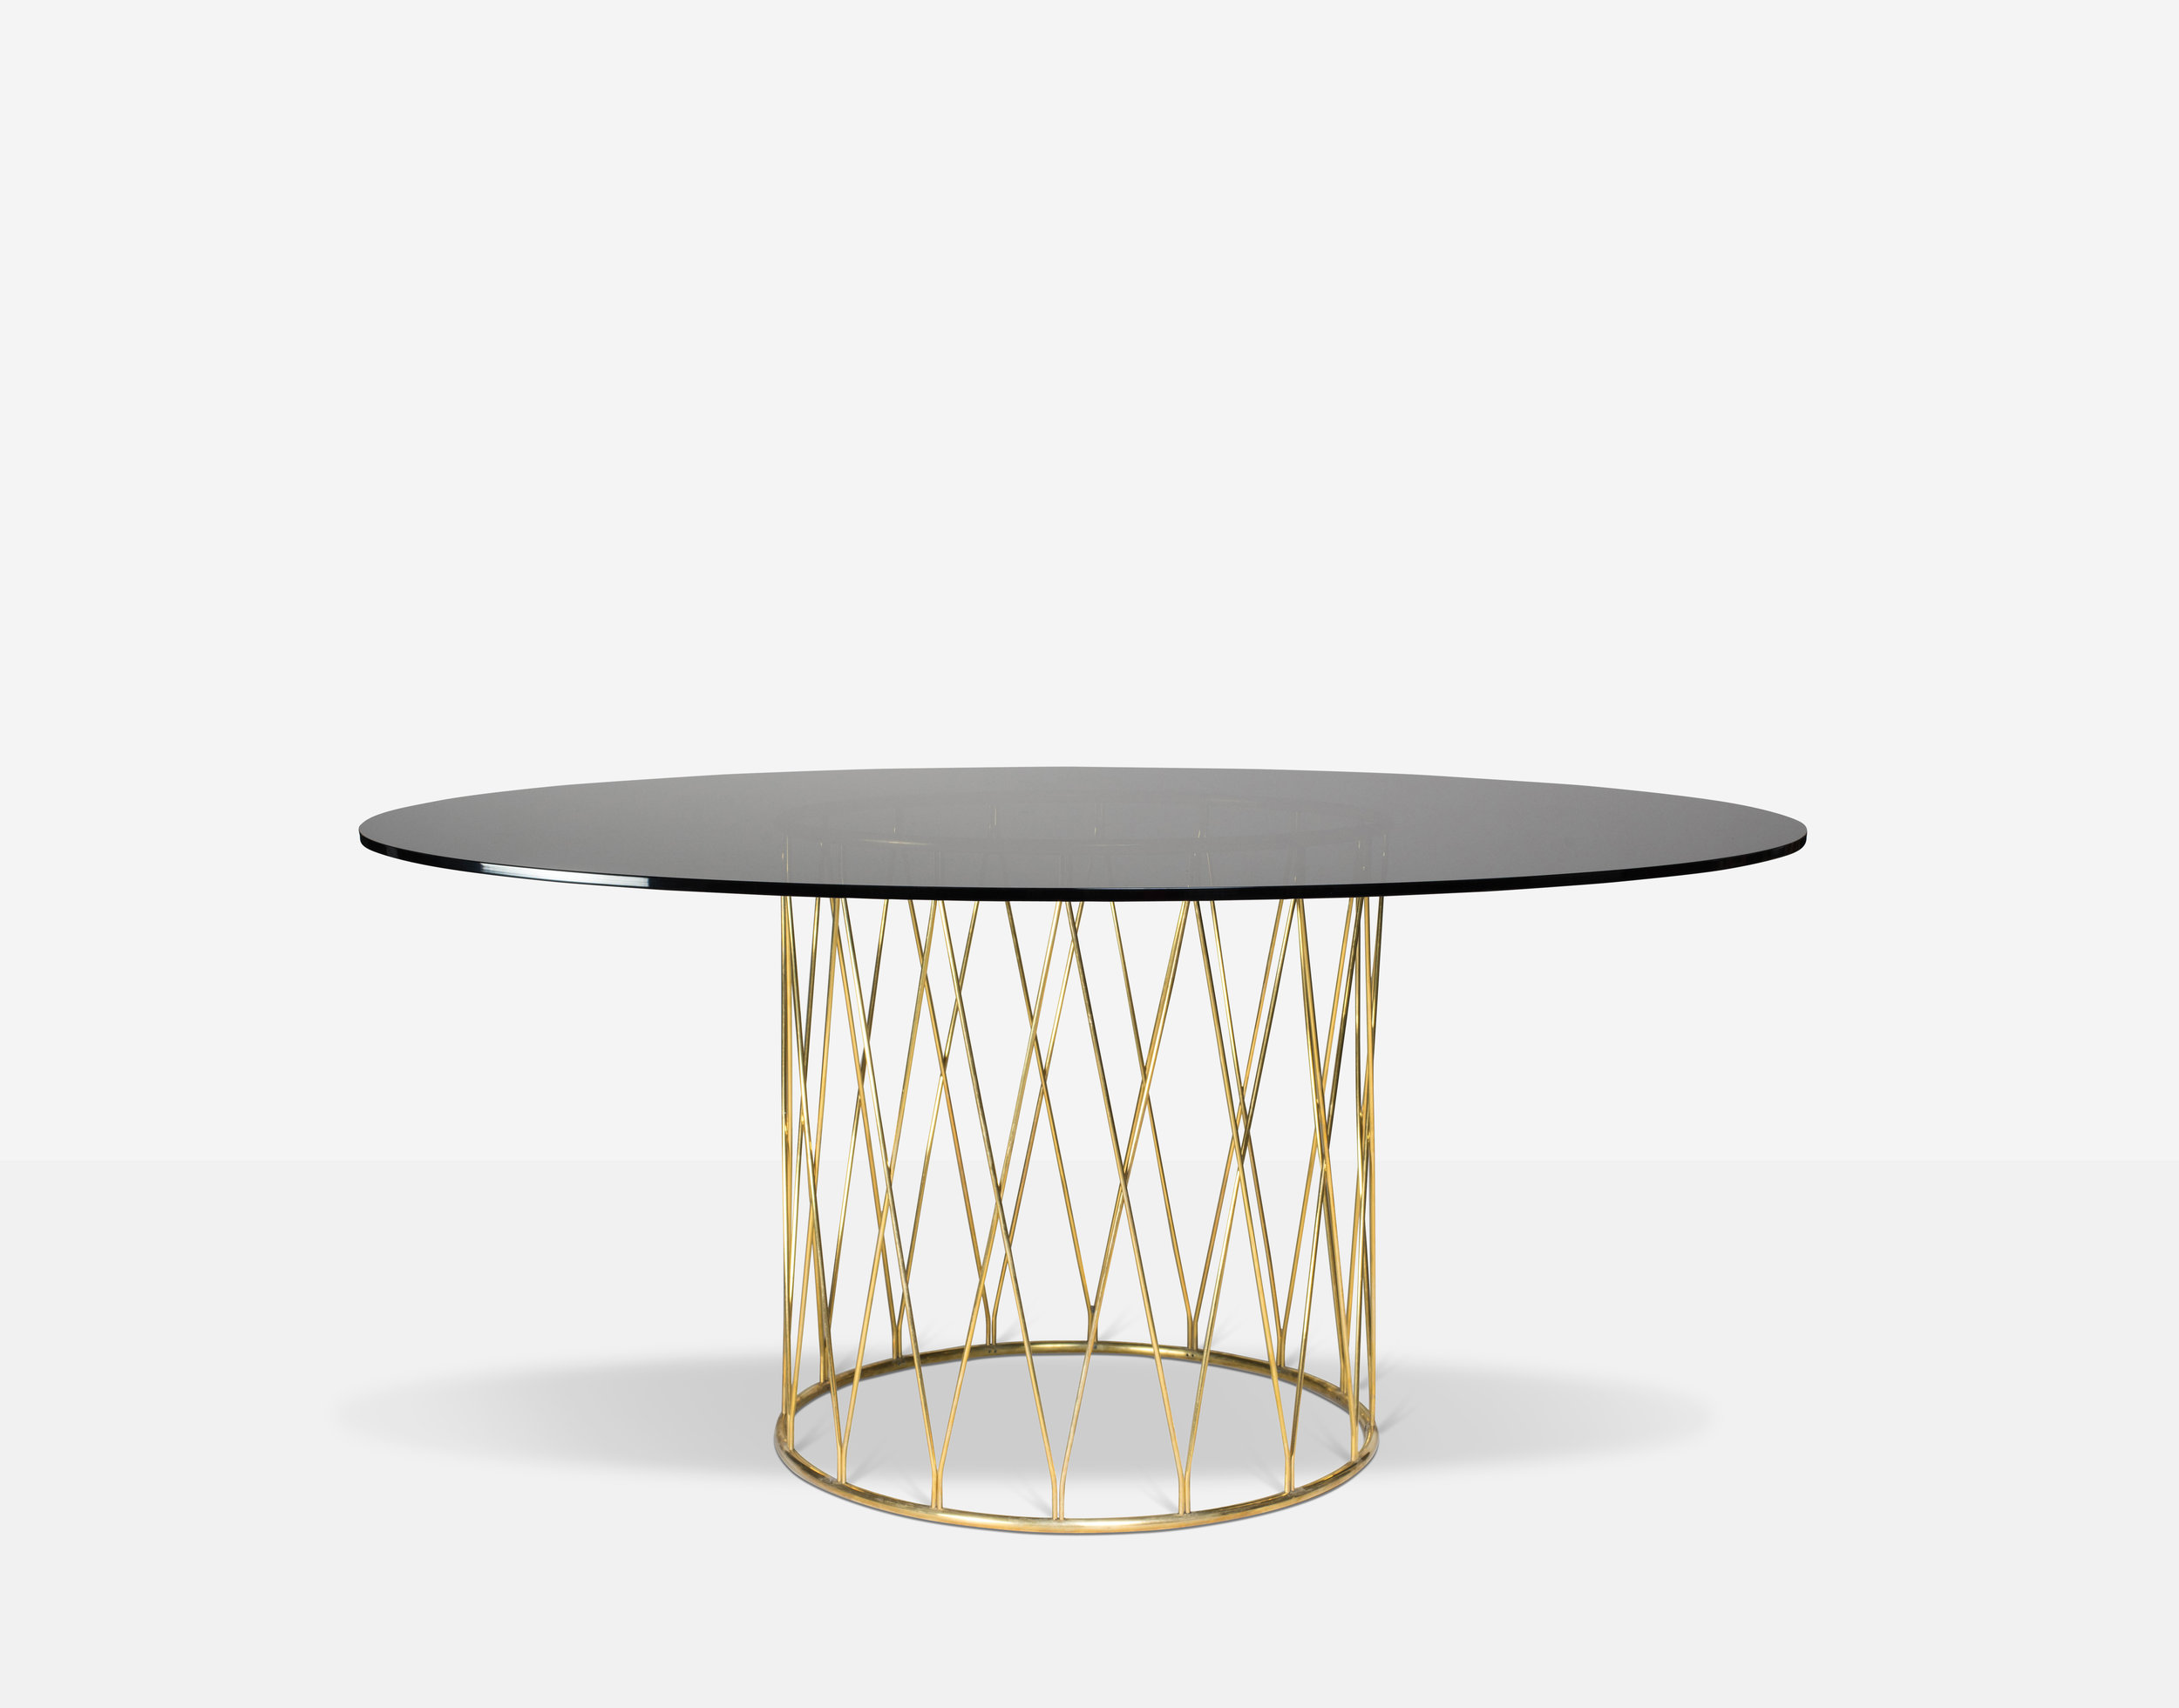 Luteca_PRV_Equipal-Dining-Table_Polished-Brass-Glass_F-W.jpg